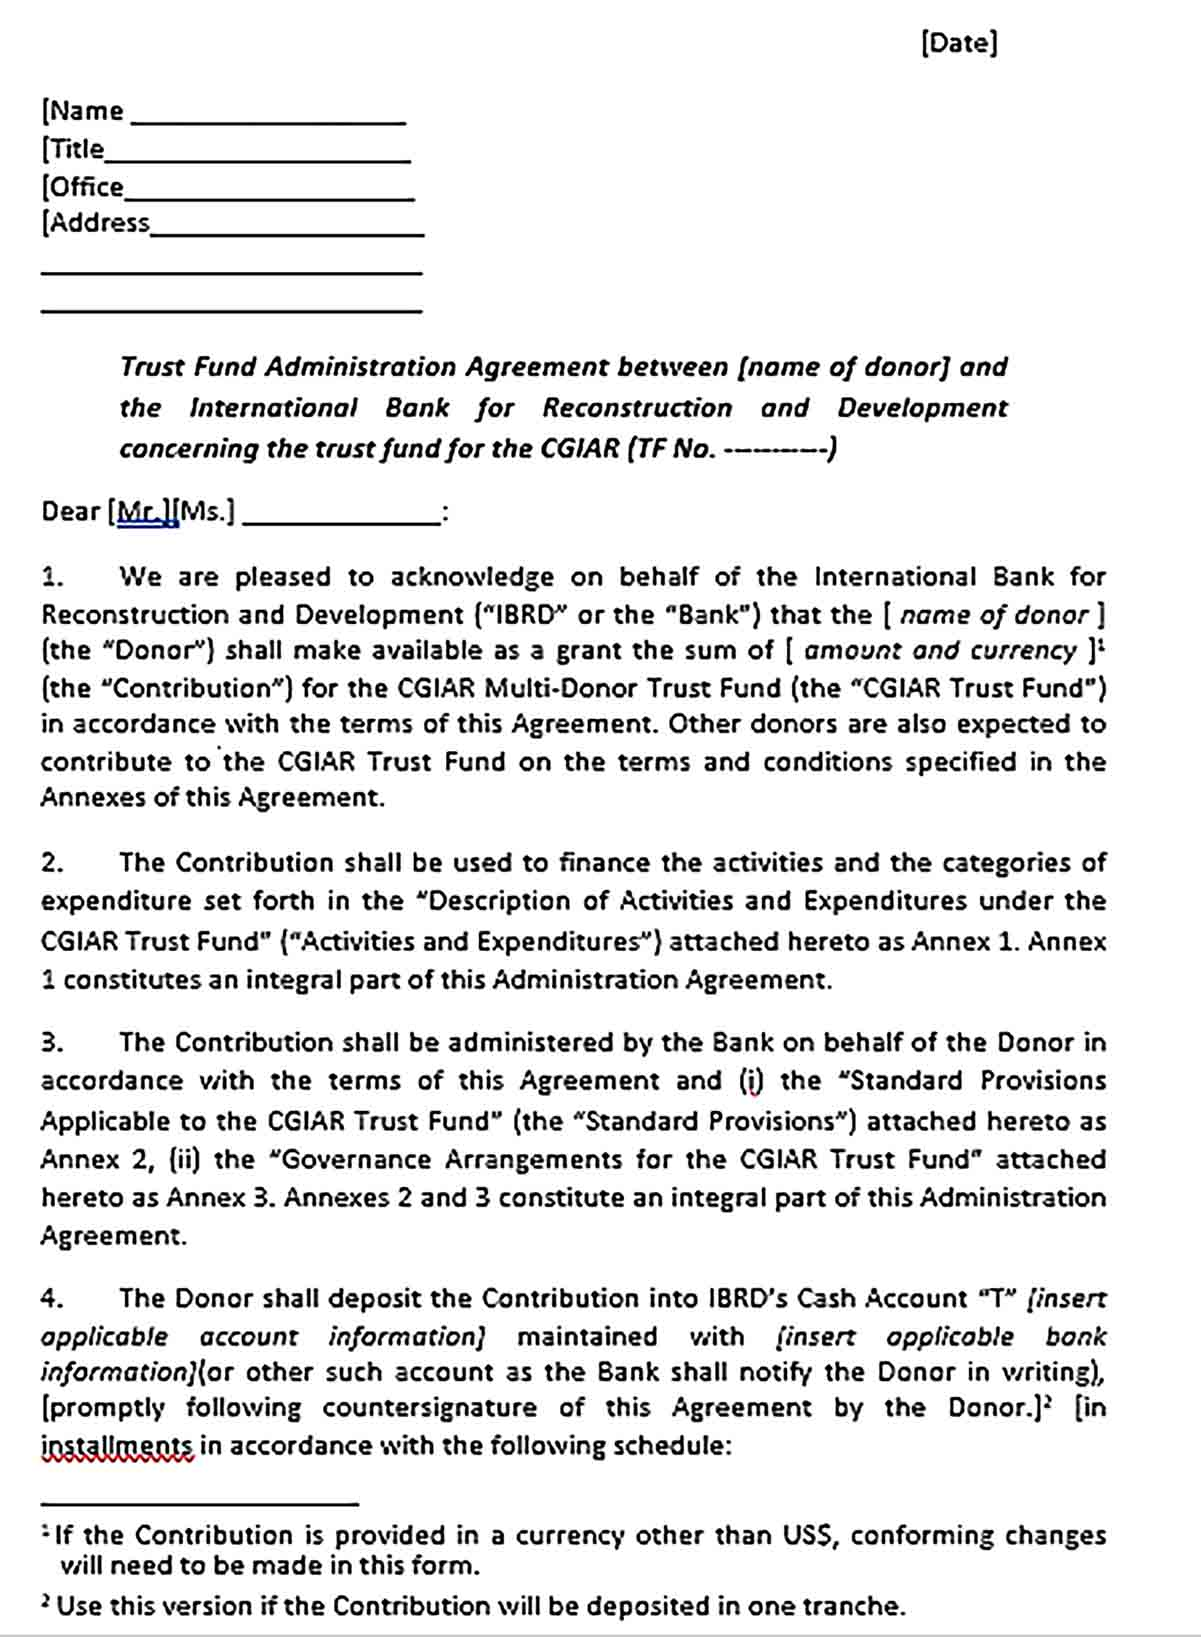 Sample Fund Administration Agreement